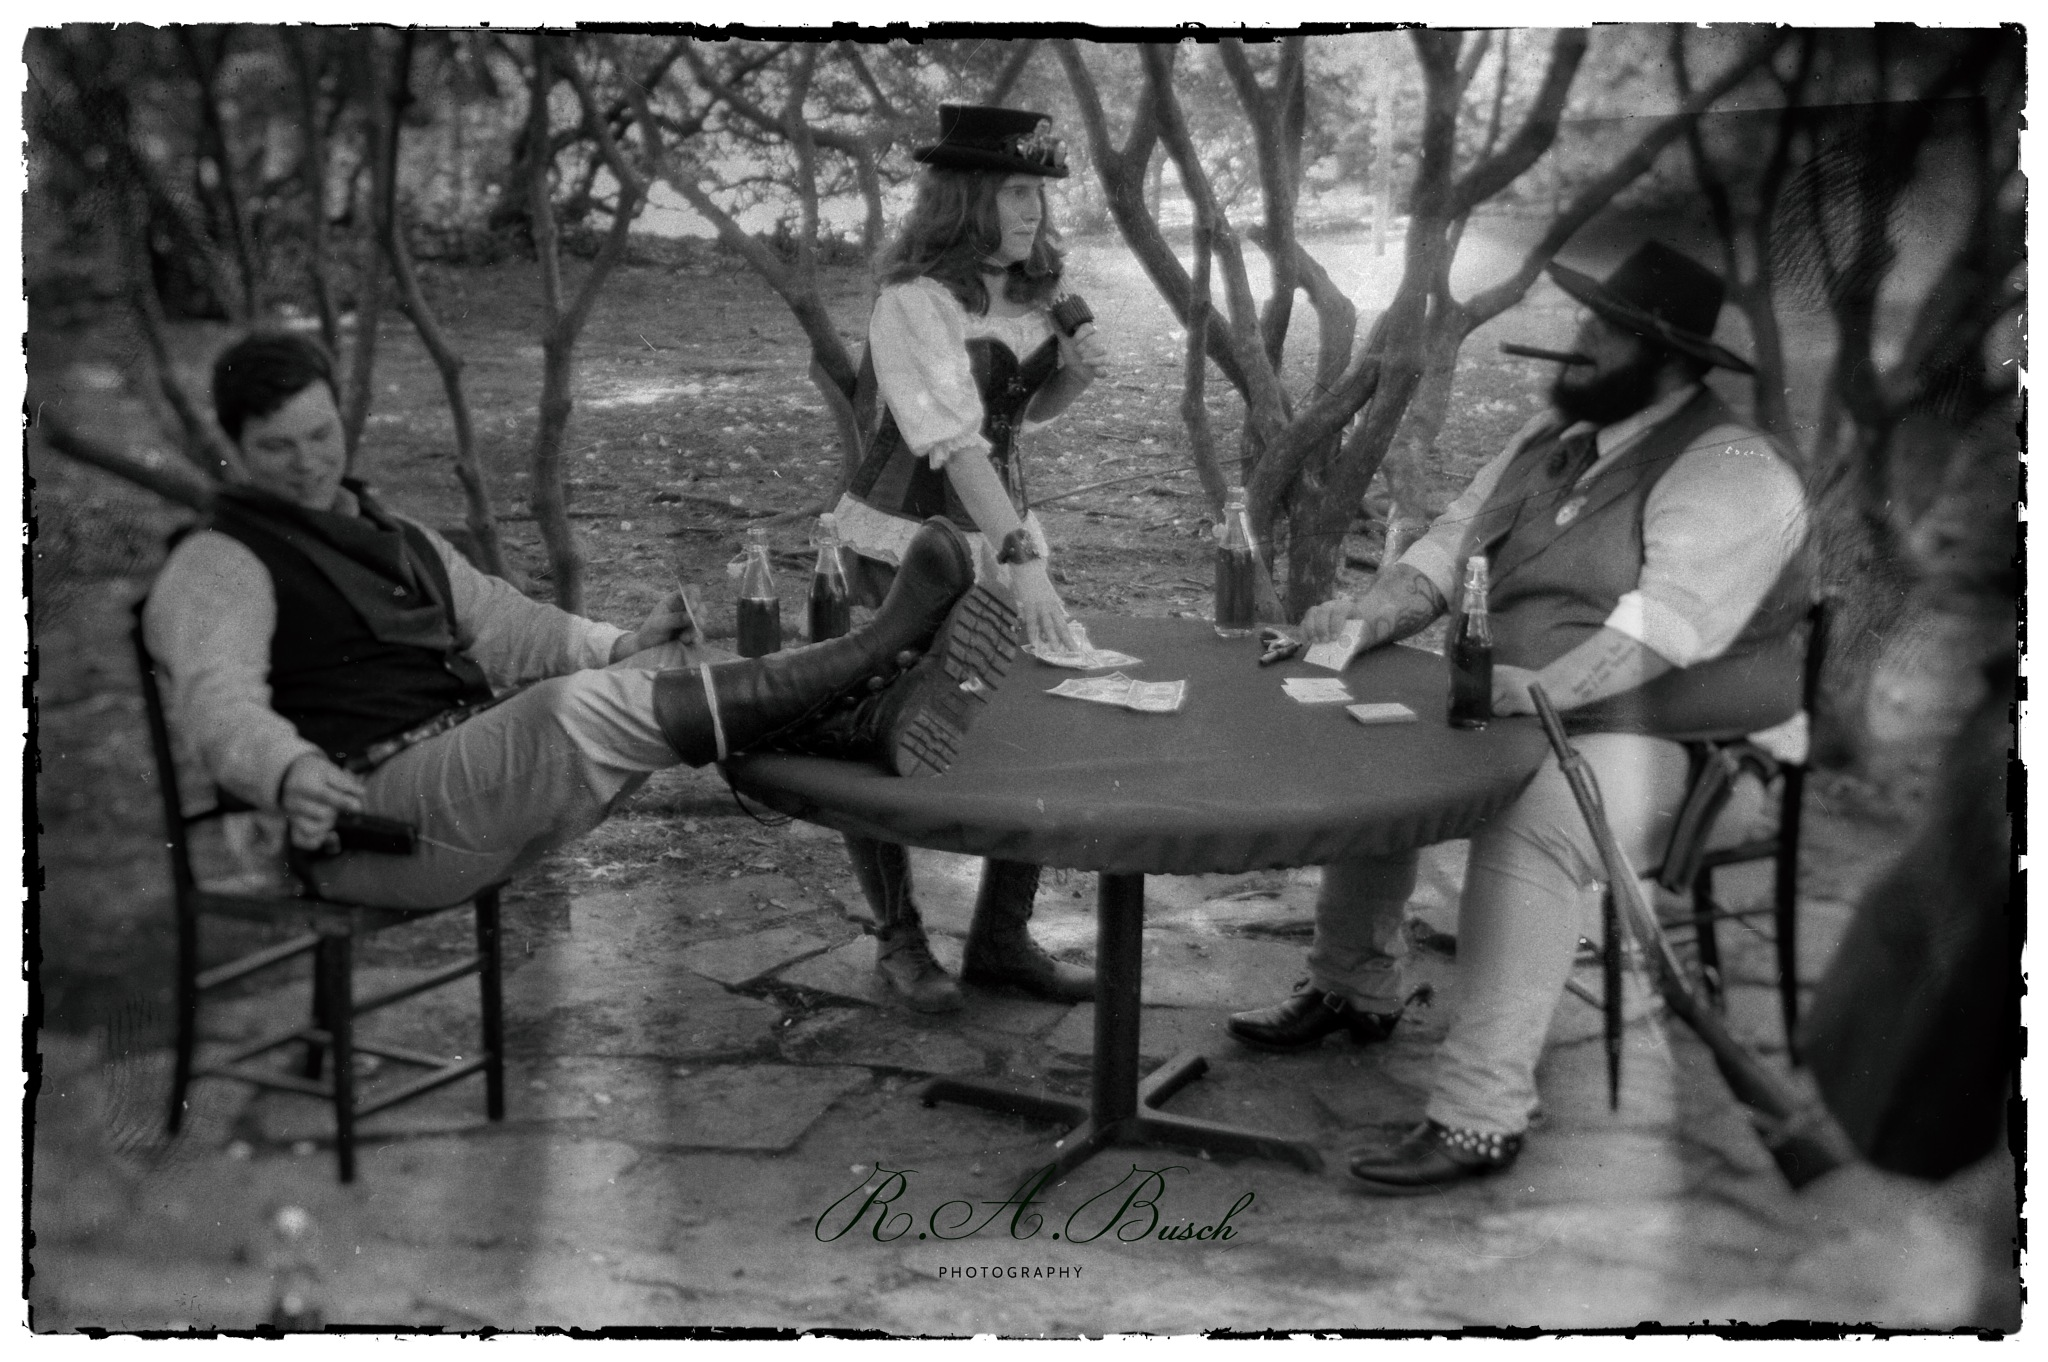 I want to play cards too by RichardABusch